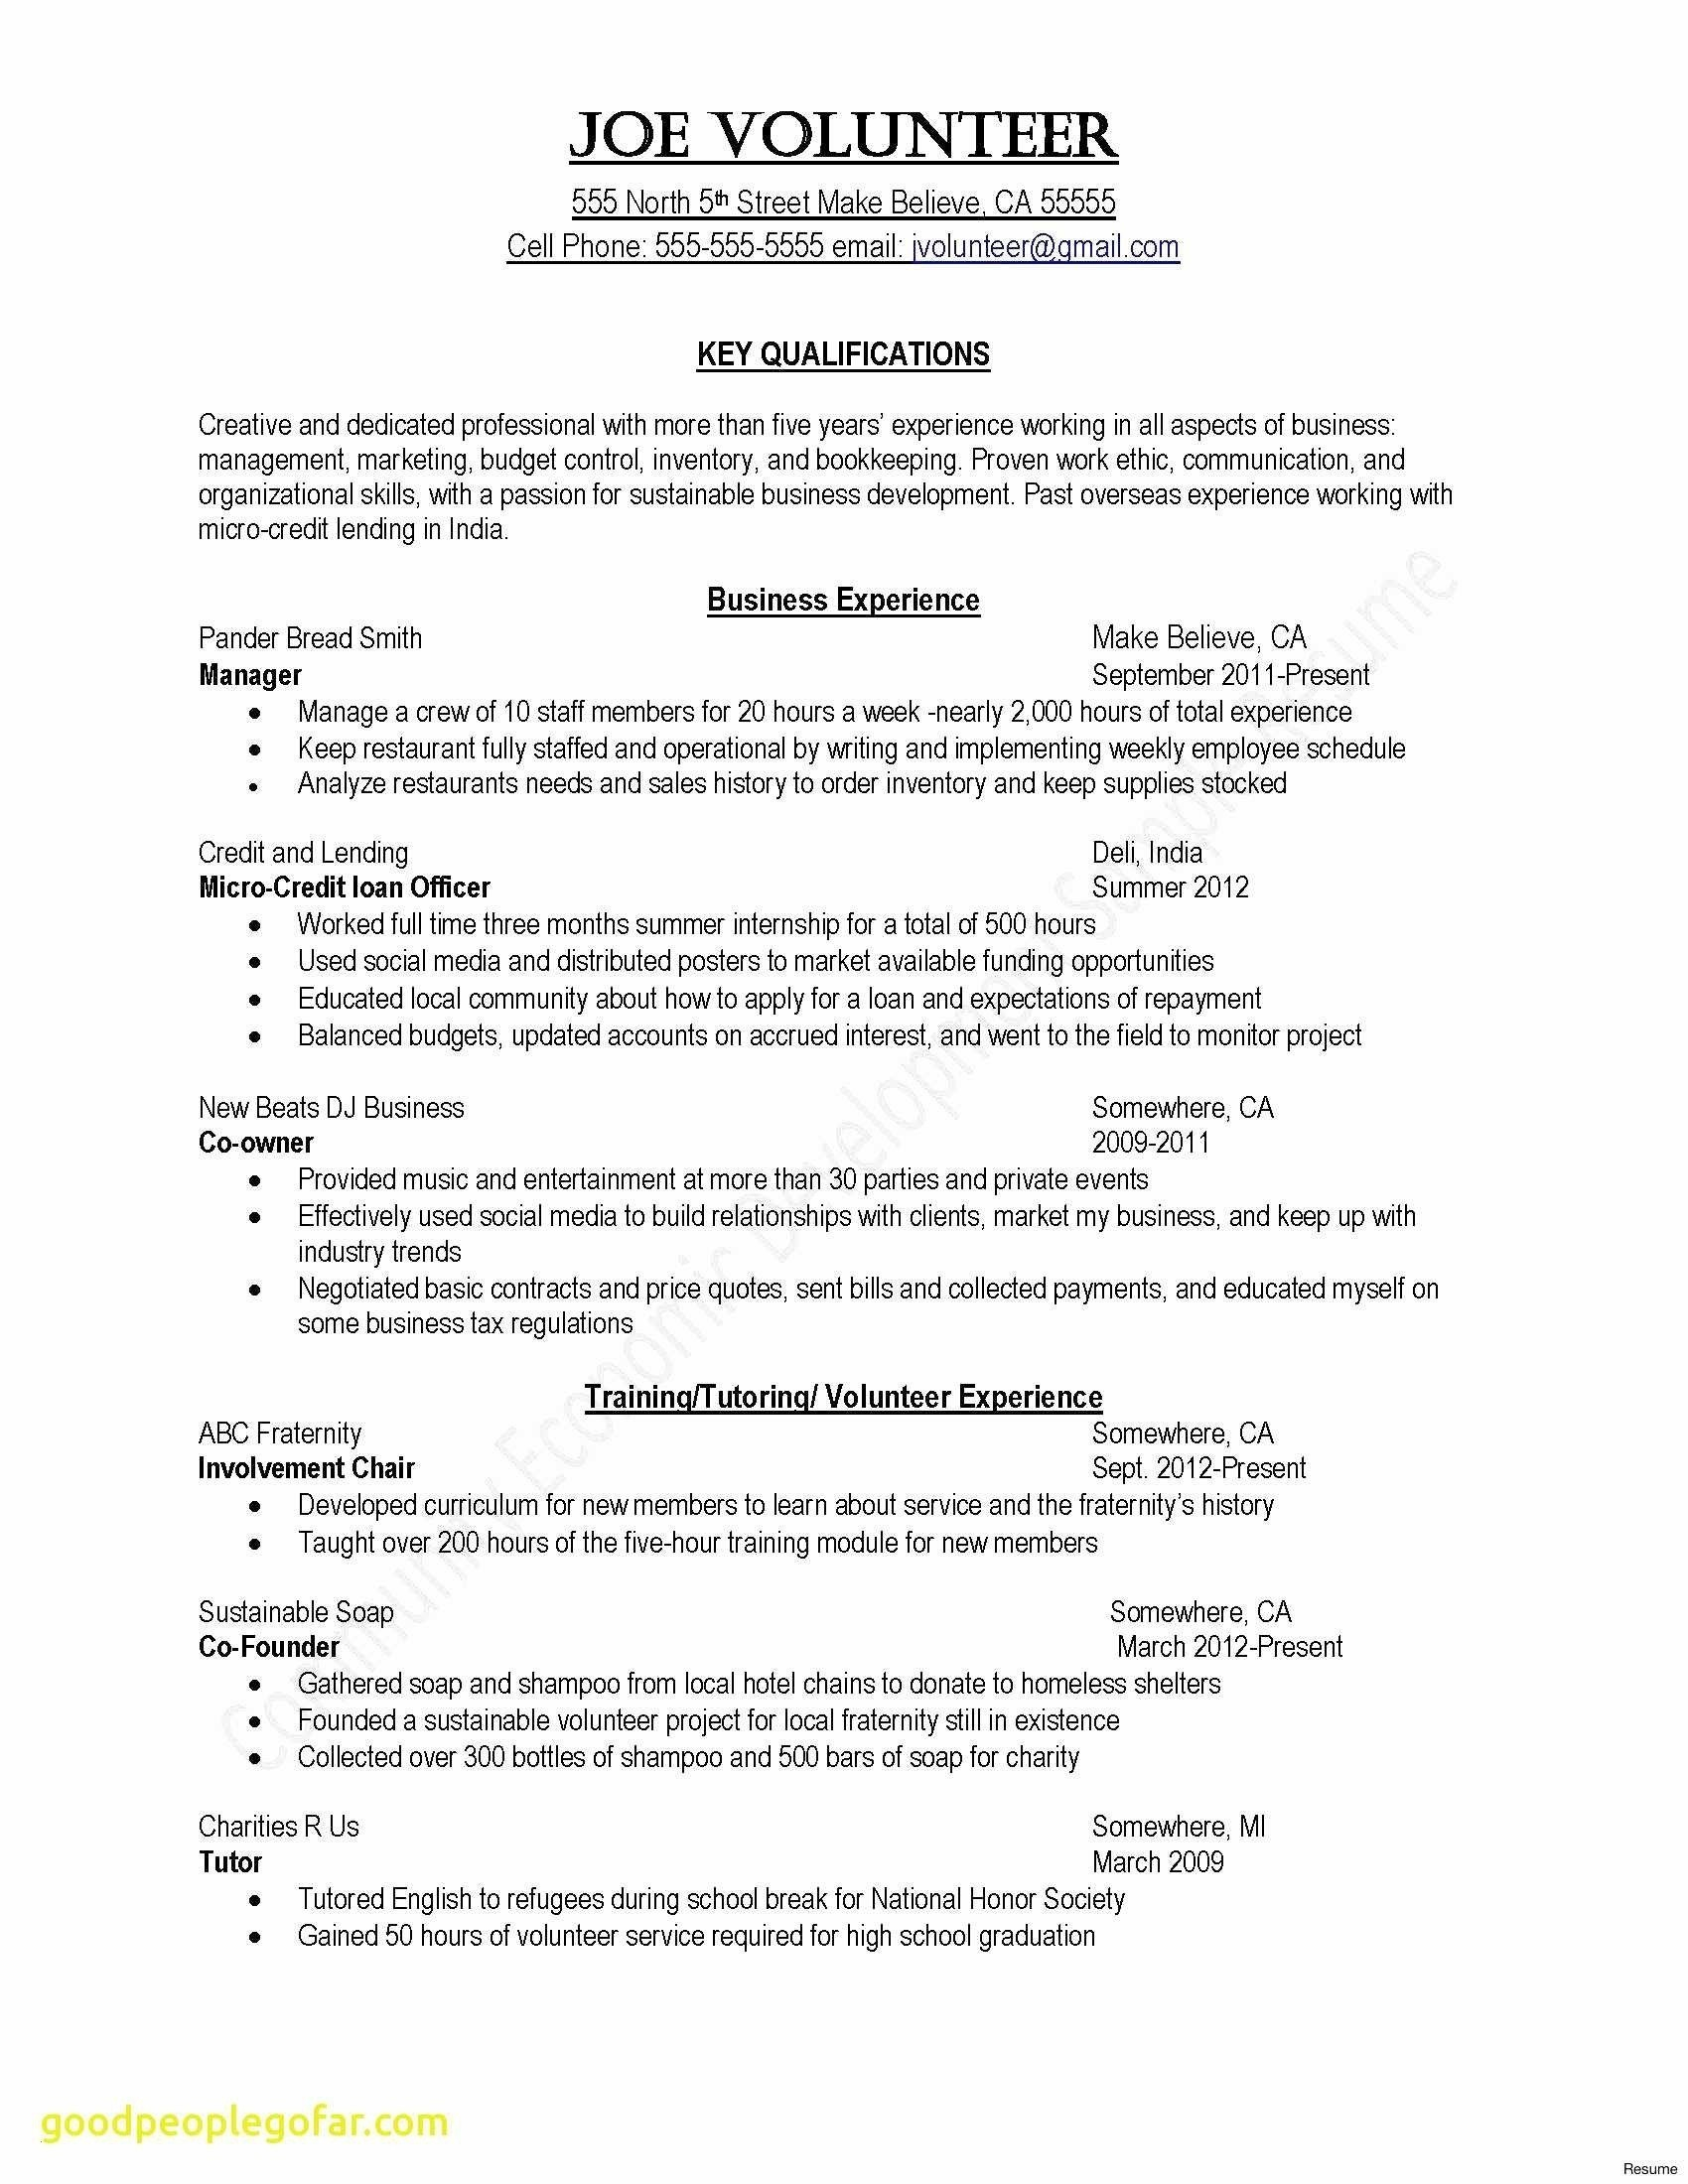 Skills to Write On A Resume - 19 Skills You Can Put A Resume